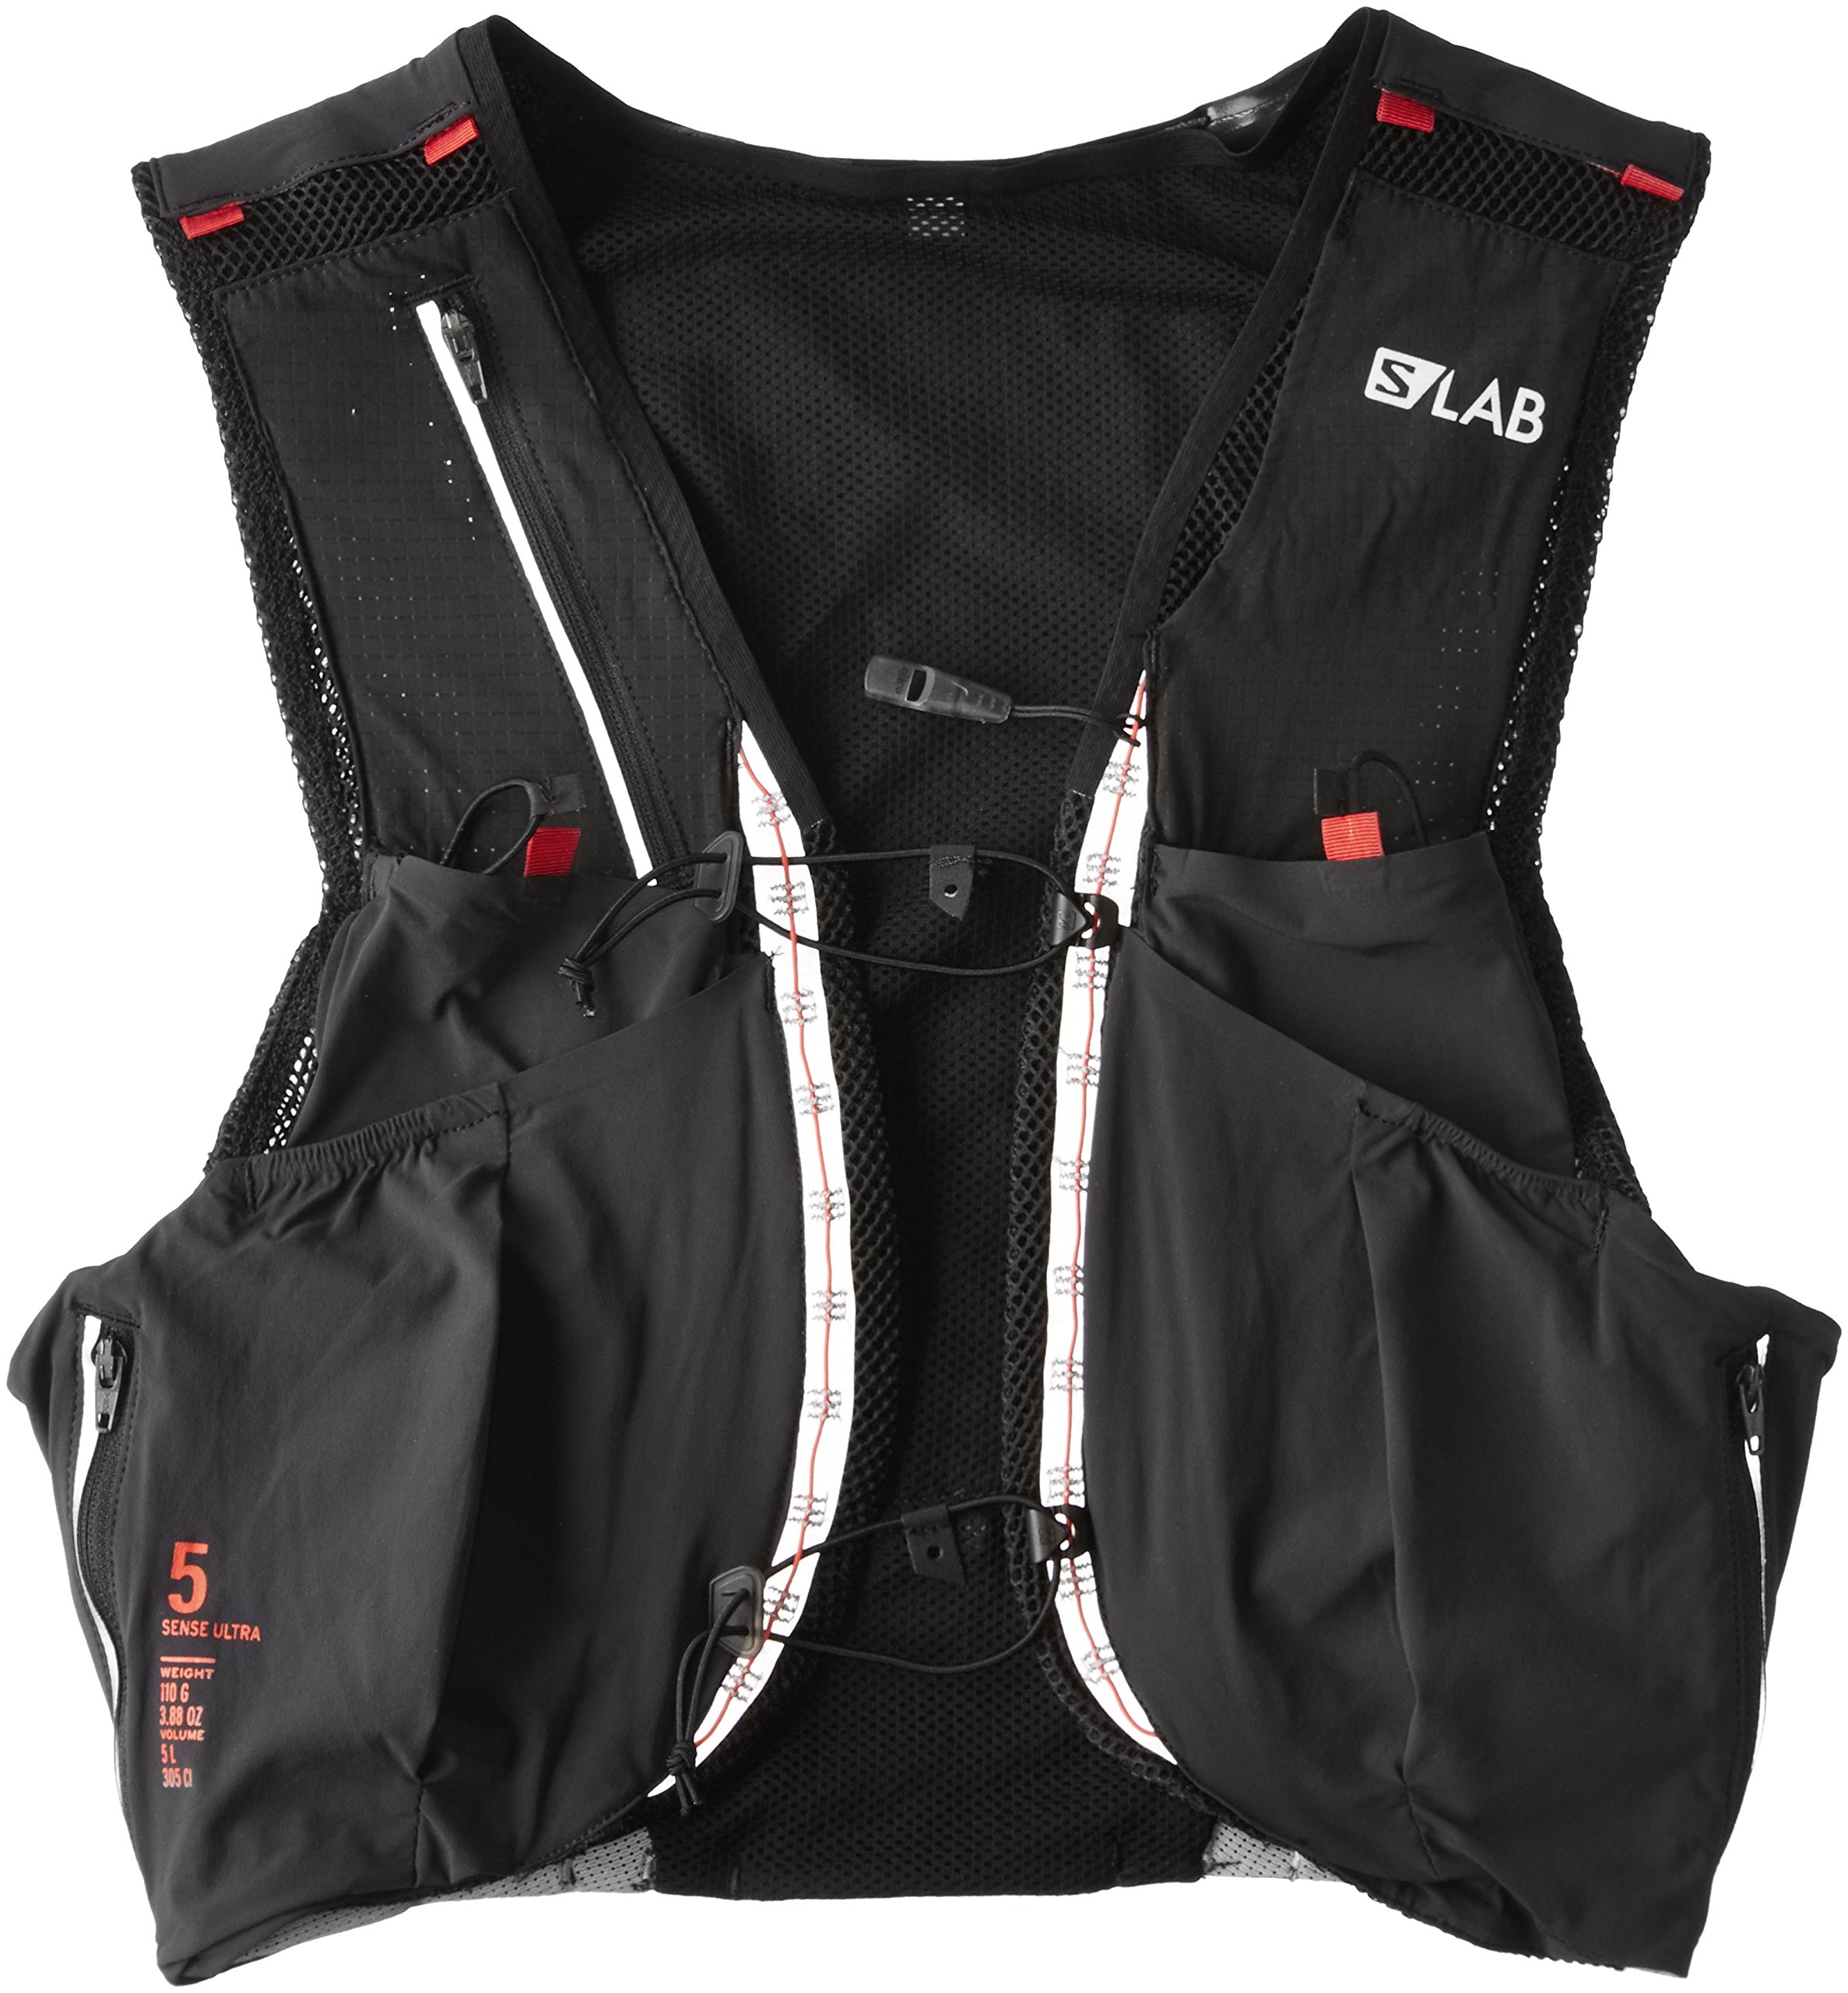 Salomon Unisex S-Lab Sense Ultra 5 Set Backpack, Black, Racing Red, S